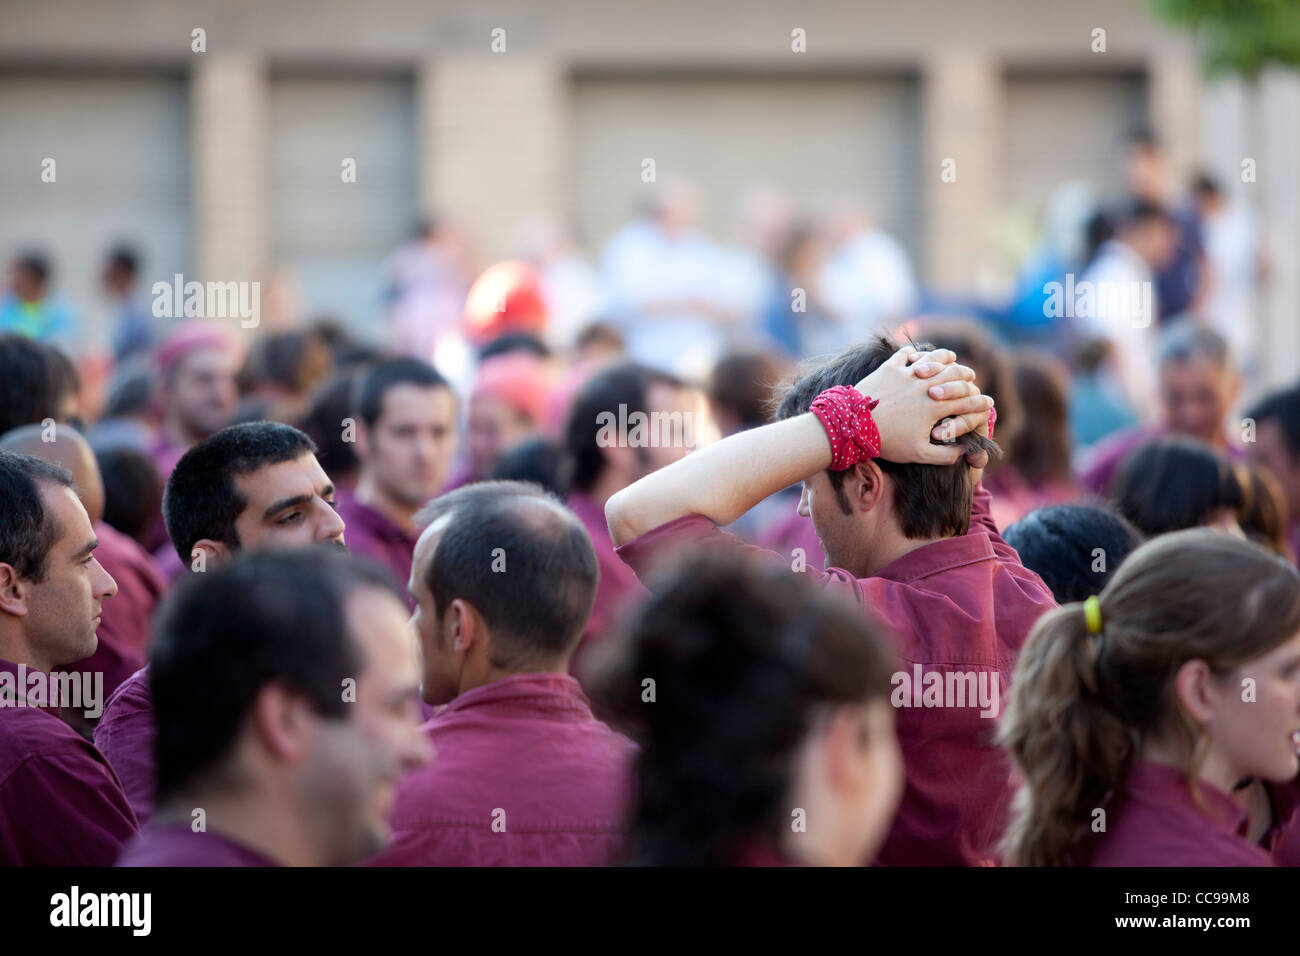 Castellers - catalonian tradition of building human towers -, Caldes de Montbui, Barcelona, Spain - Stock Image